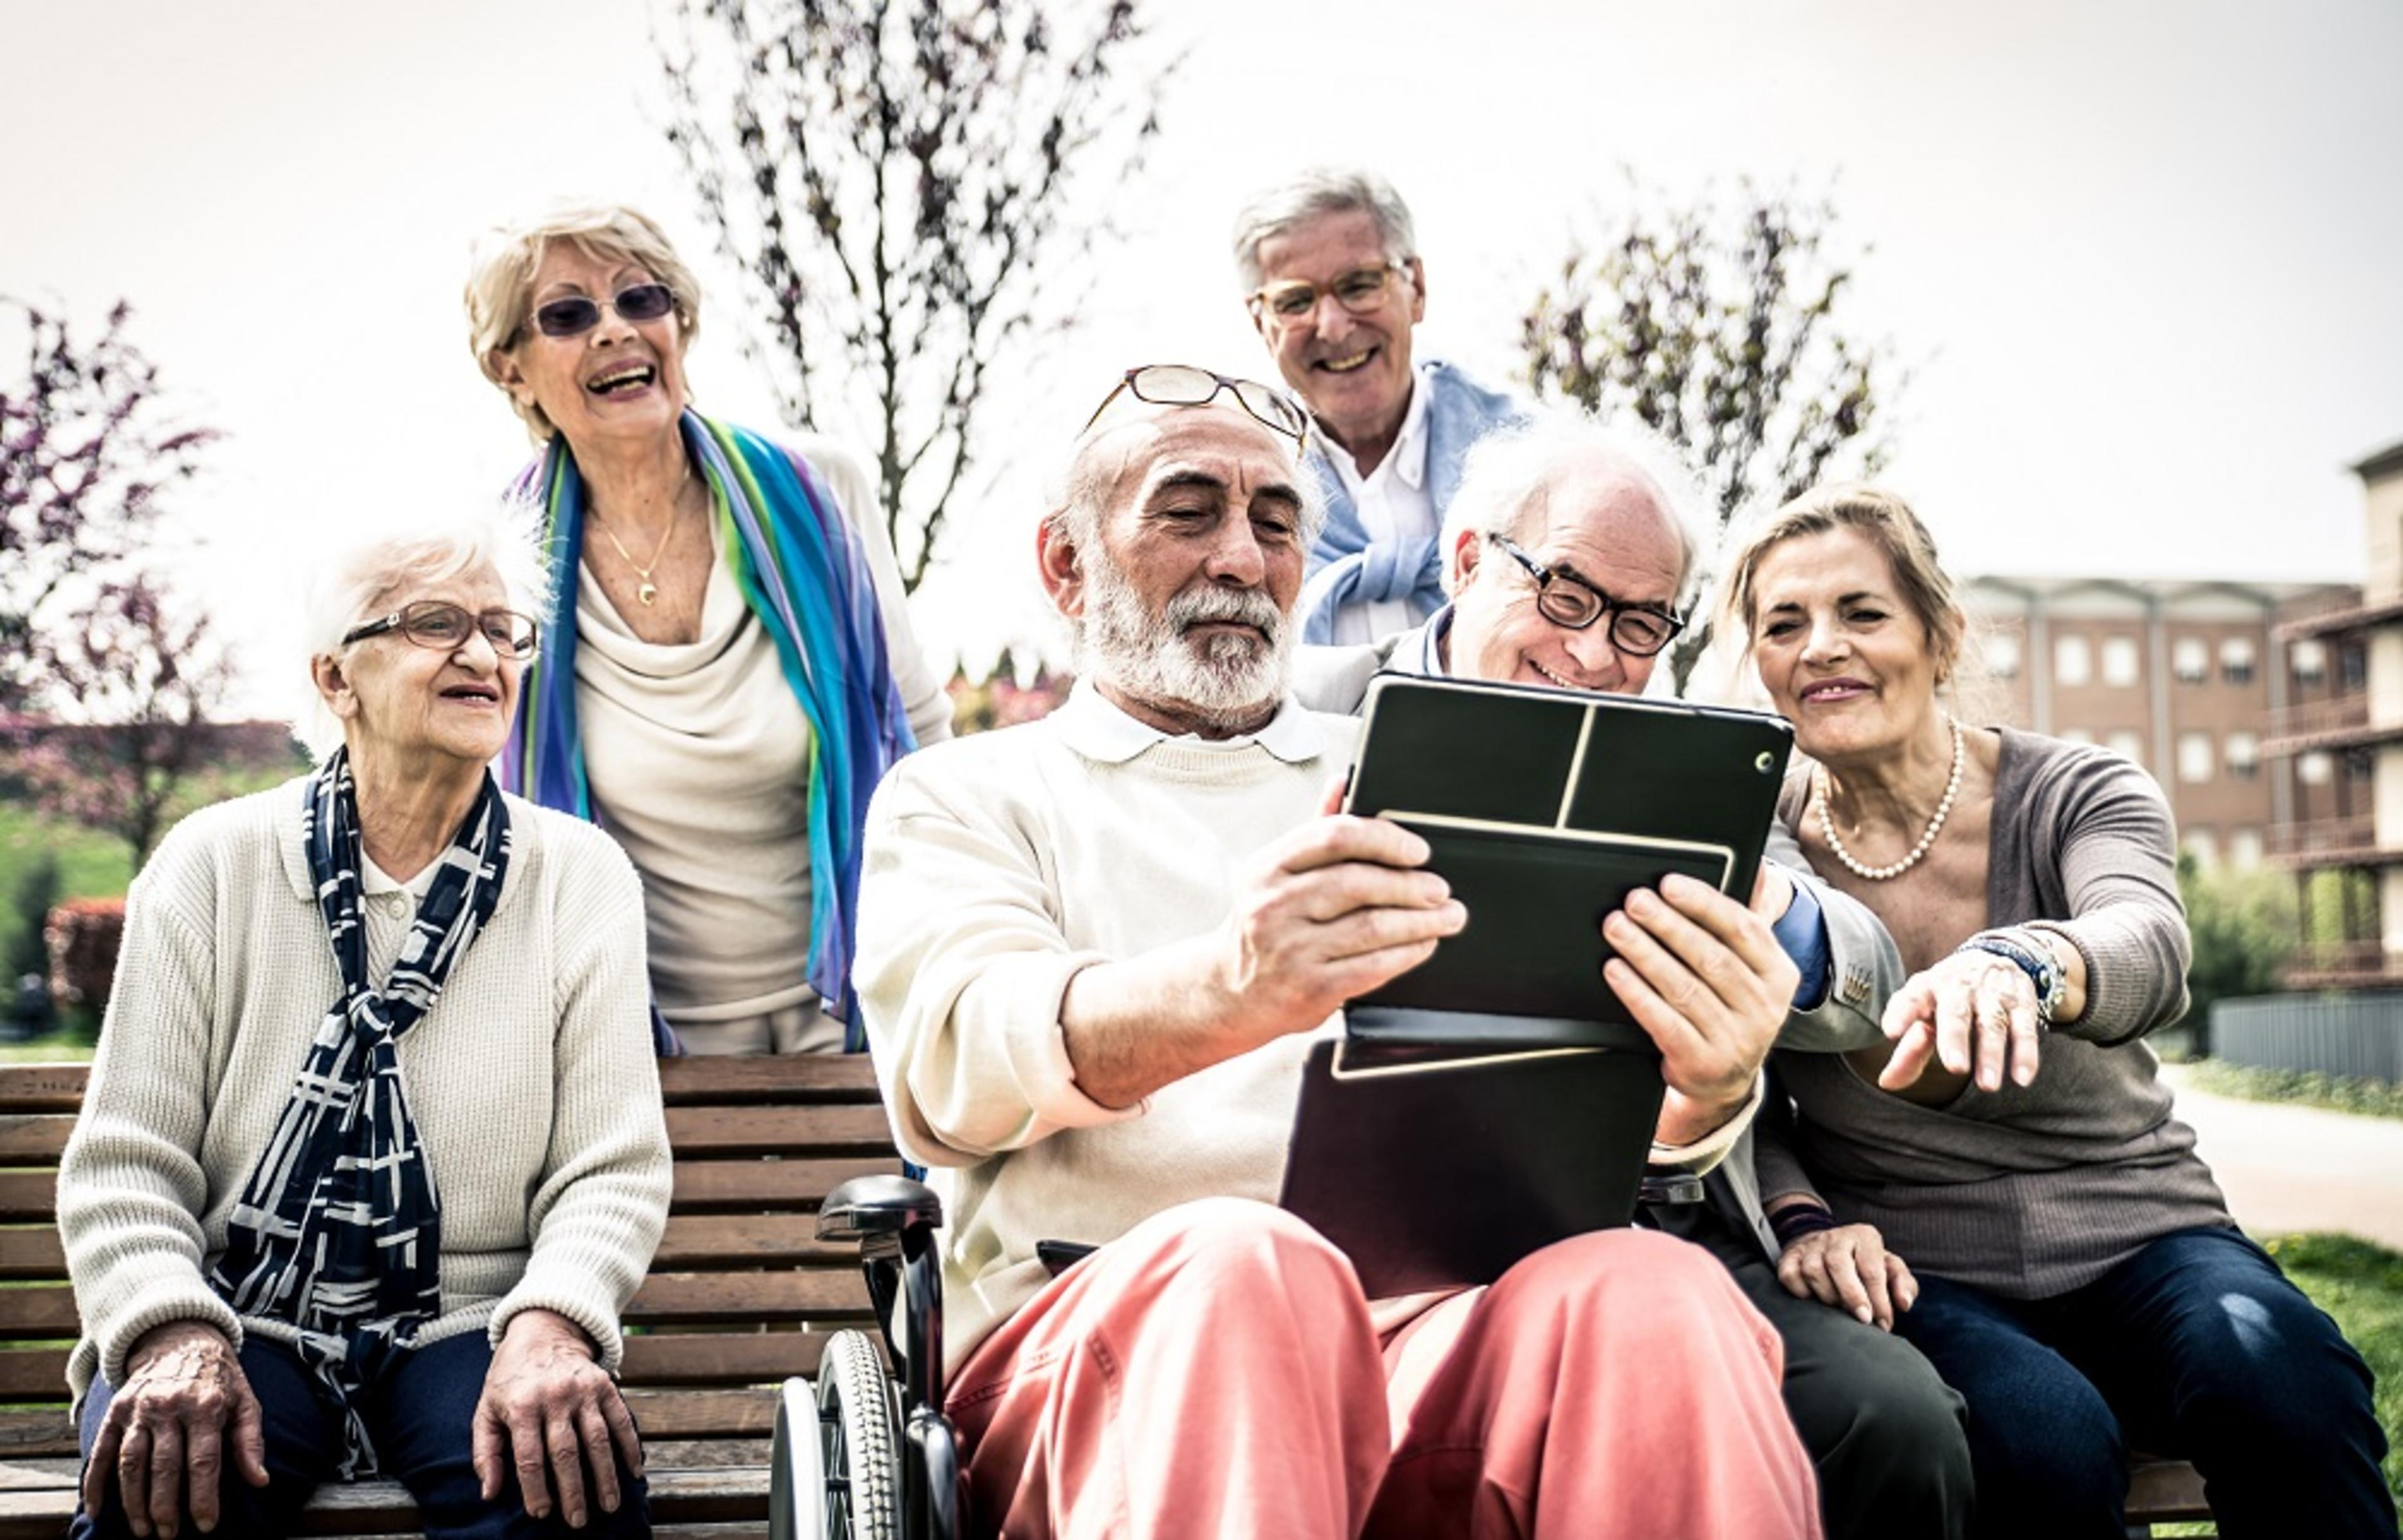 Huntley Place, Reading - group on bench with tablet